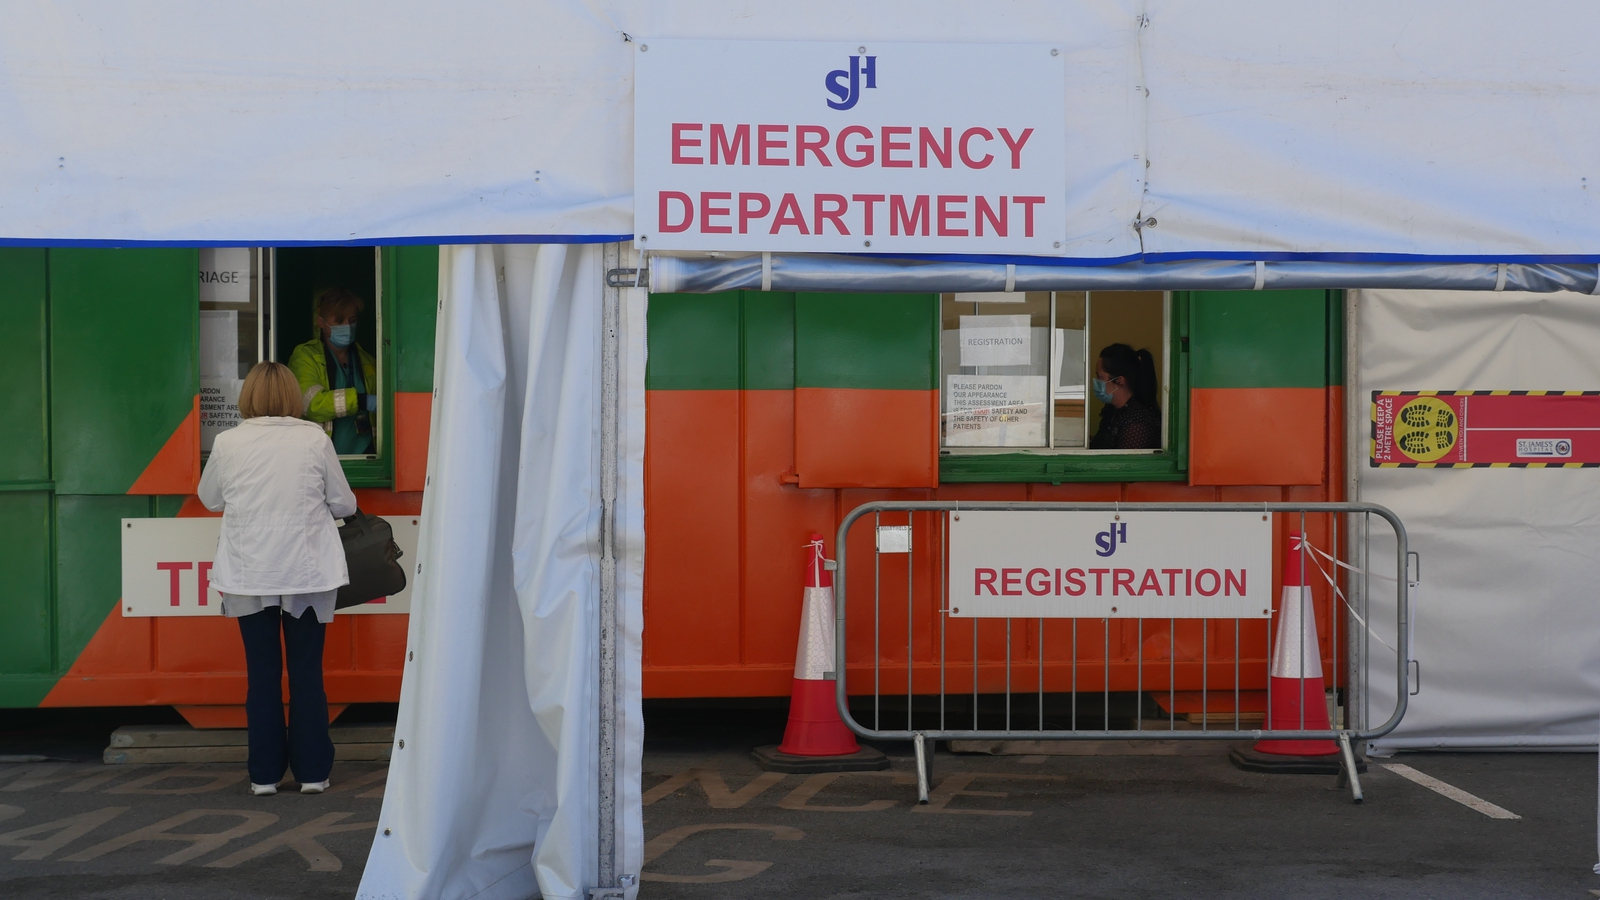 Image - A registration cabin set up in the St James's car park now filters patients before entering the ED